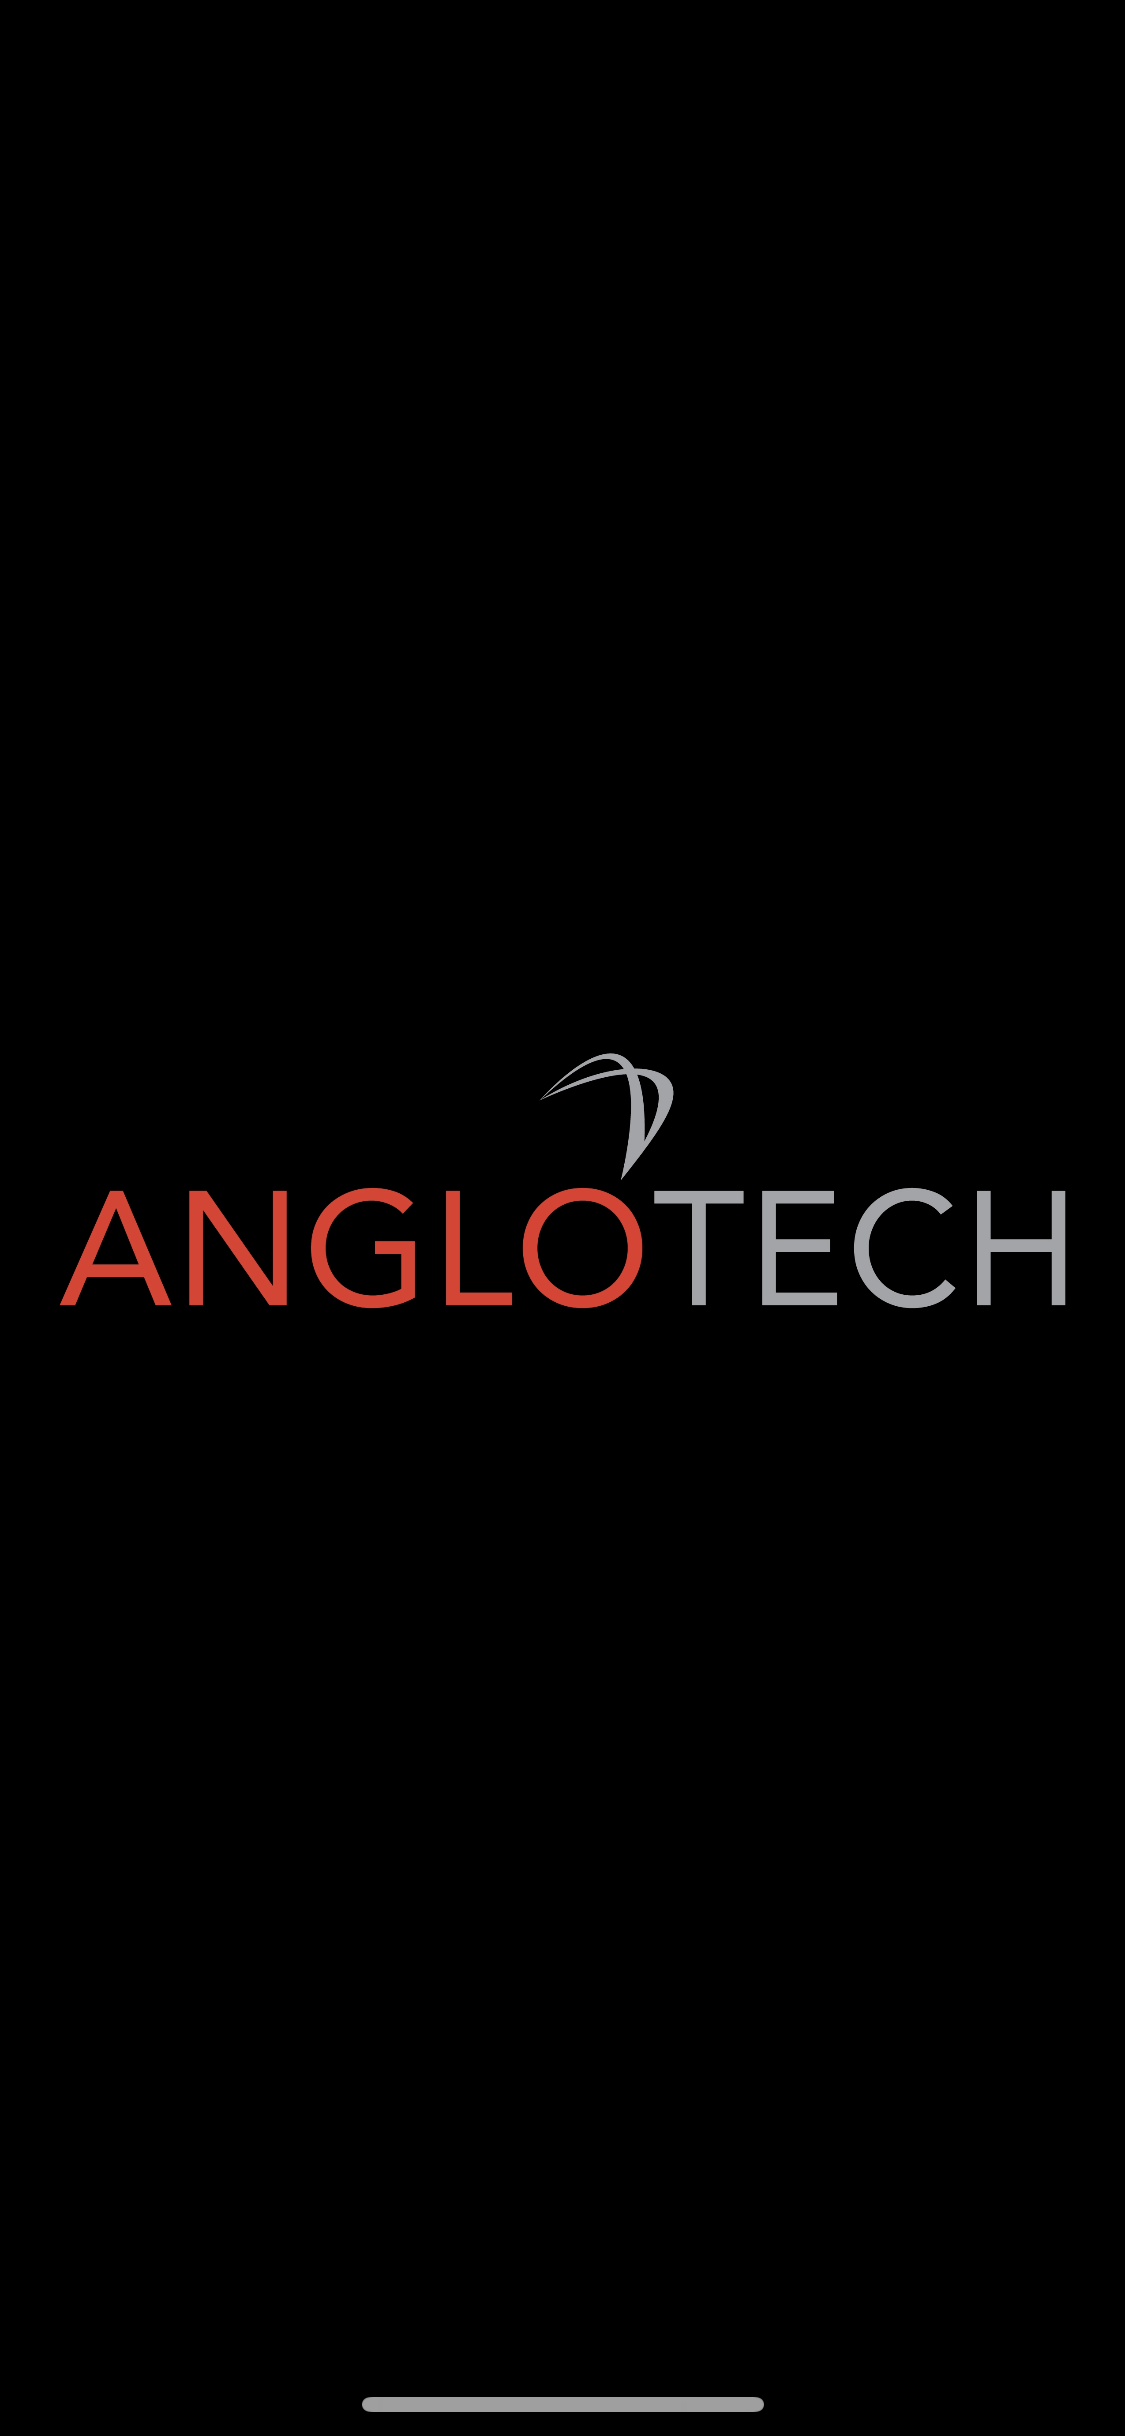 AngloTech Solutions Limited